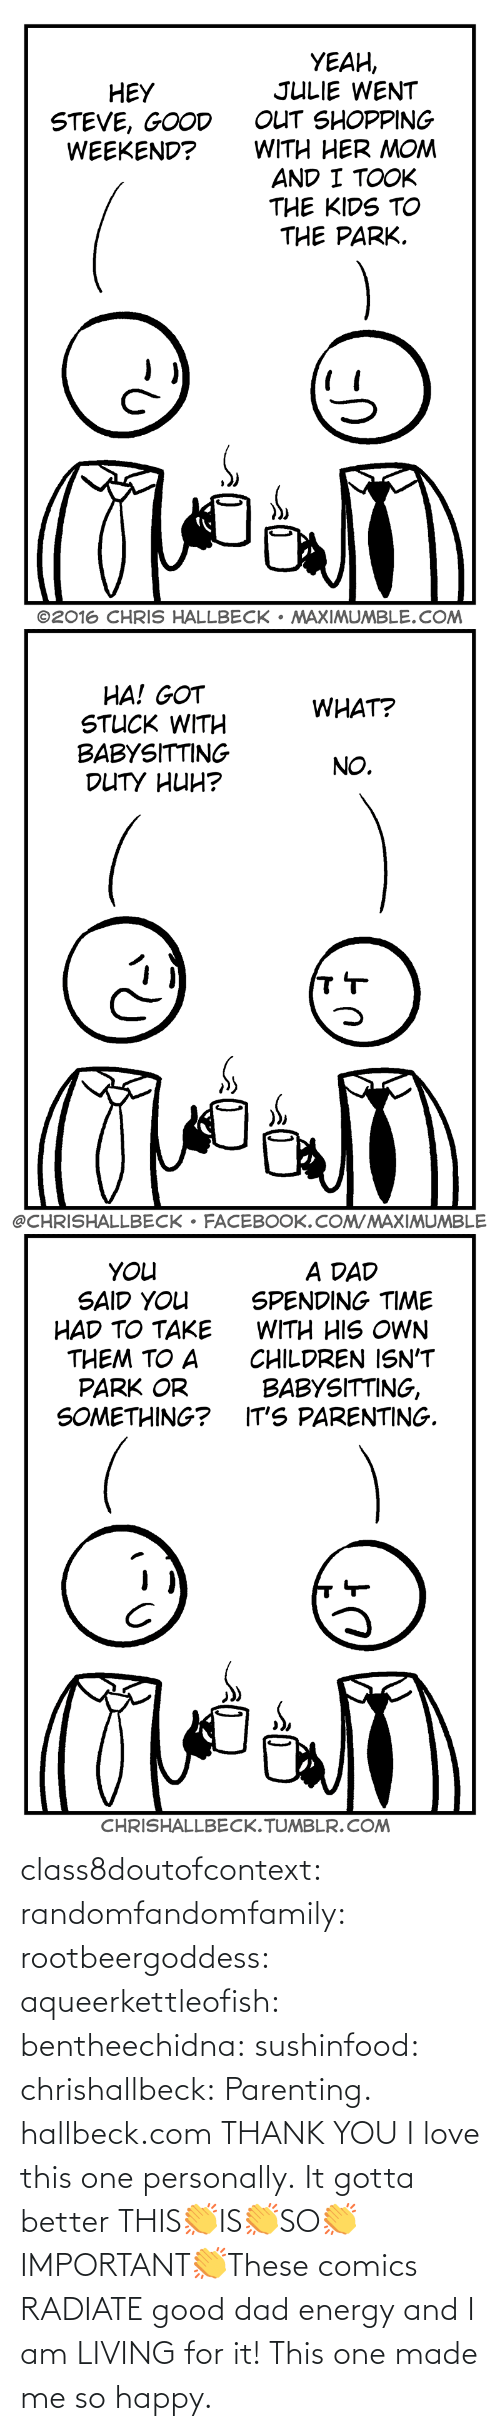 Dad: class8doutofcontext: randomfandomfamily:  rootbeergoddess:  aqueerkettleofish:  bentheechidna:  sushinfood:  chrishallbeck:  Parenting. hallbeck.com  THANK YOU  I love this one personally.    It gotta better   THIS👏IS👏SO👏IMPORTANT👏These comics RADIATE good dad energy and I am LIVING for it!    This one made me so happy.